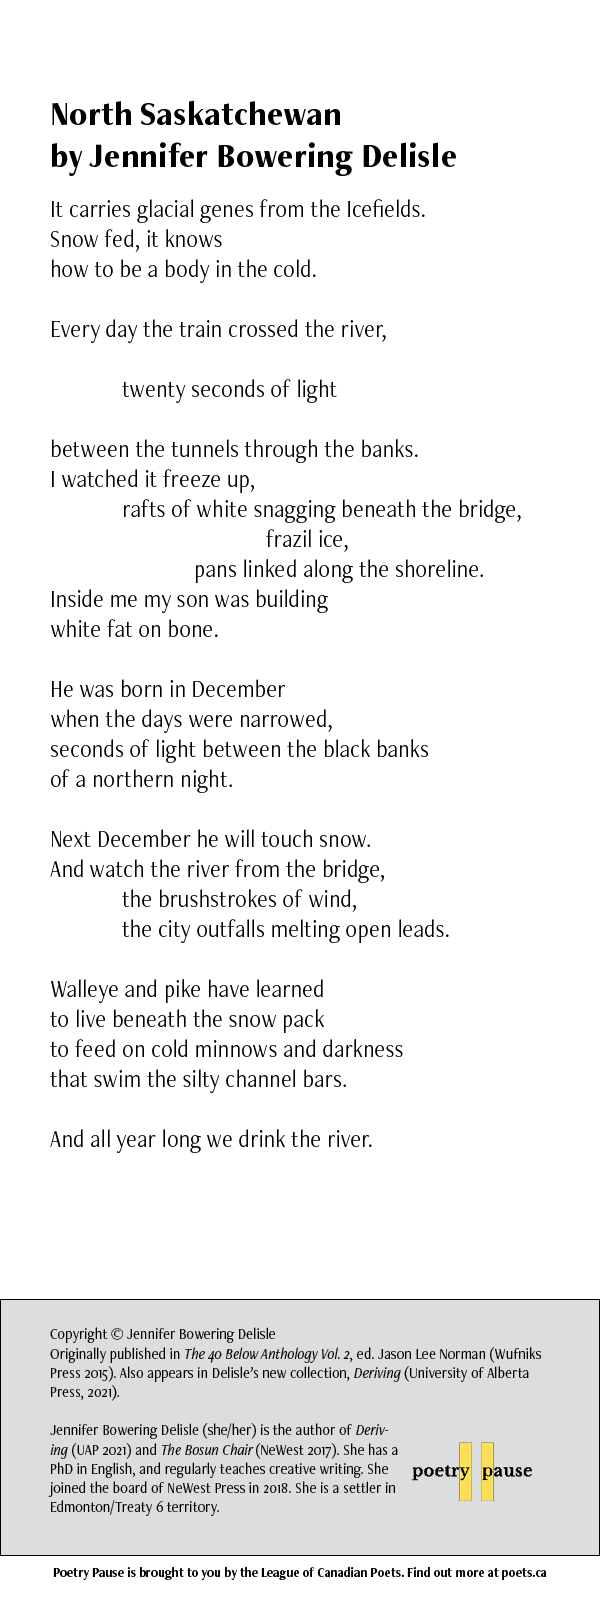 Poet: Jennifer Bowering Delisle Poem title: North Saskatchewan Poem: It carries glacial genes from the Icefields. Snow fed, it knows how to be a body in the cold. Every day the train crossed the river, twenty seconds of light between the tunnels through the banks. I watched it freeze up, rafts of white snagging beneath the bridge, frazil ice, pans linked along the shoreline. Inside me my son was building white fat on bone. He was born in December when the days were narrowed, seconds of light between the black banks of a northern night. Next December he will touch snow. And watch the river from the bridge, the brushstrokes of wind, the city outfalls melting open leads. Walleye and pike have learned to live beneath the snow pack to feed on cold minnows and darkness that swim the silty channel bars. And all year long we drink the river. End of poem. Credits: Copyright © Jennifer Bowering Delisle Originally published in The 40 Below Anthology Vol. 2, ed. Jason Lee Norman (Wufniks Press 2015). Also appears in Delisle's new collection, Deriving (University of Alberta Press, 2021). Jennifer Bowering Delisle (she/her) is the author of Deriving (UAP 2021) and The Bosun Chair (NeWest 2017). She has a PhD in English, and regularly teaches creative writing. She joined the board of NeWest Press in 2018. She is a settler in Edmonton/Treaty 6 territory.